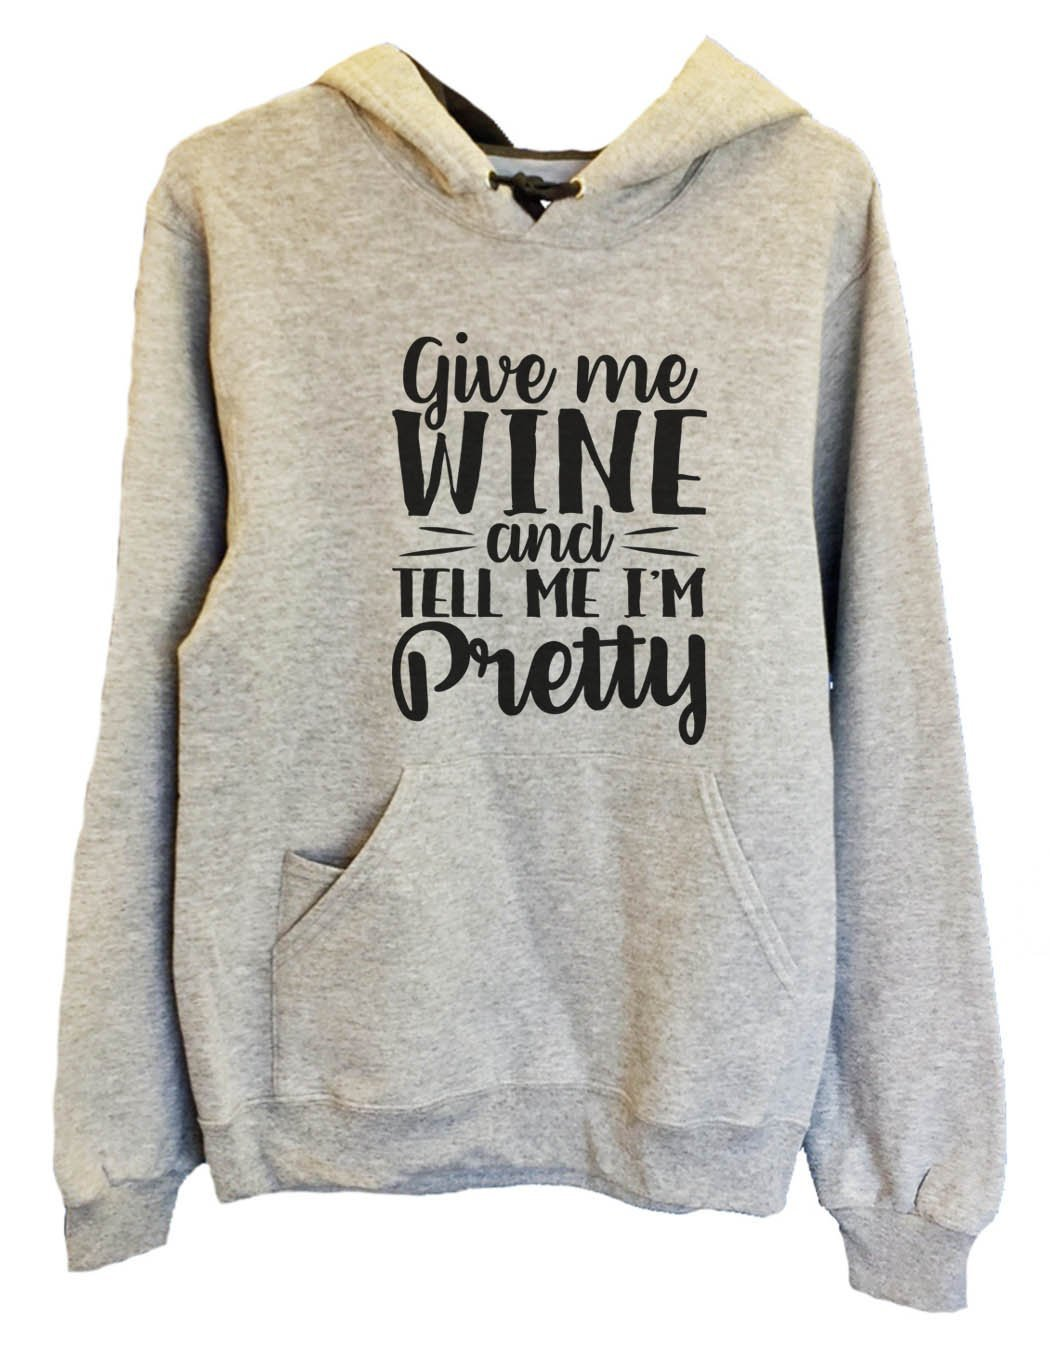 UNISEX HOODIE - Give Me Wine And Tell Me I'm Pretty - FUNNY MENS AND WOMENS HOODED SWEATSHIRTS - 2138 Funny Shirt